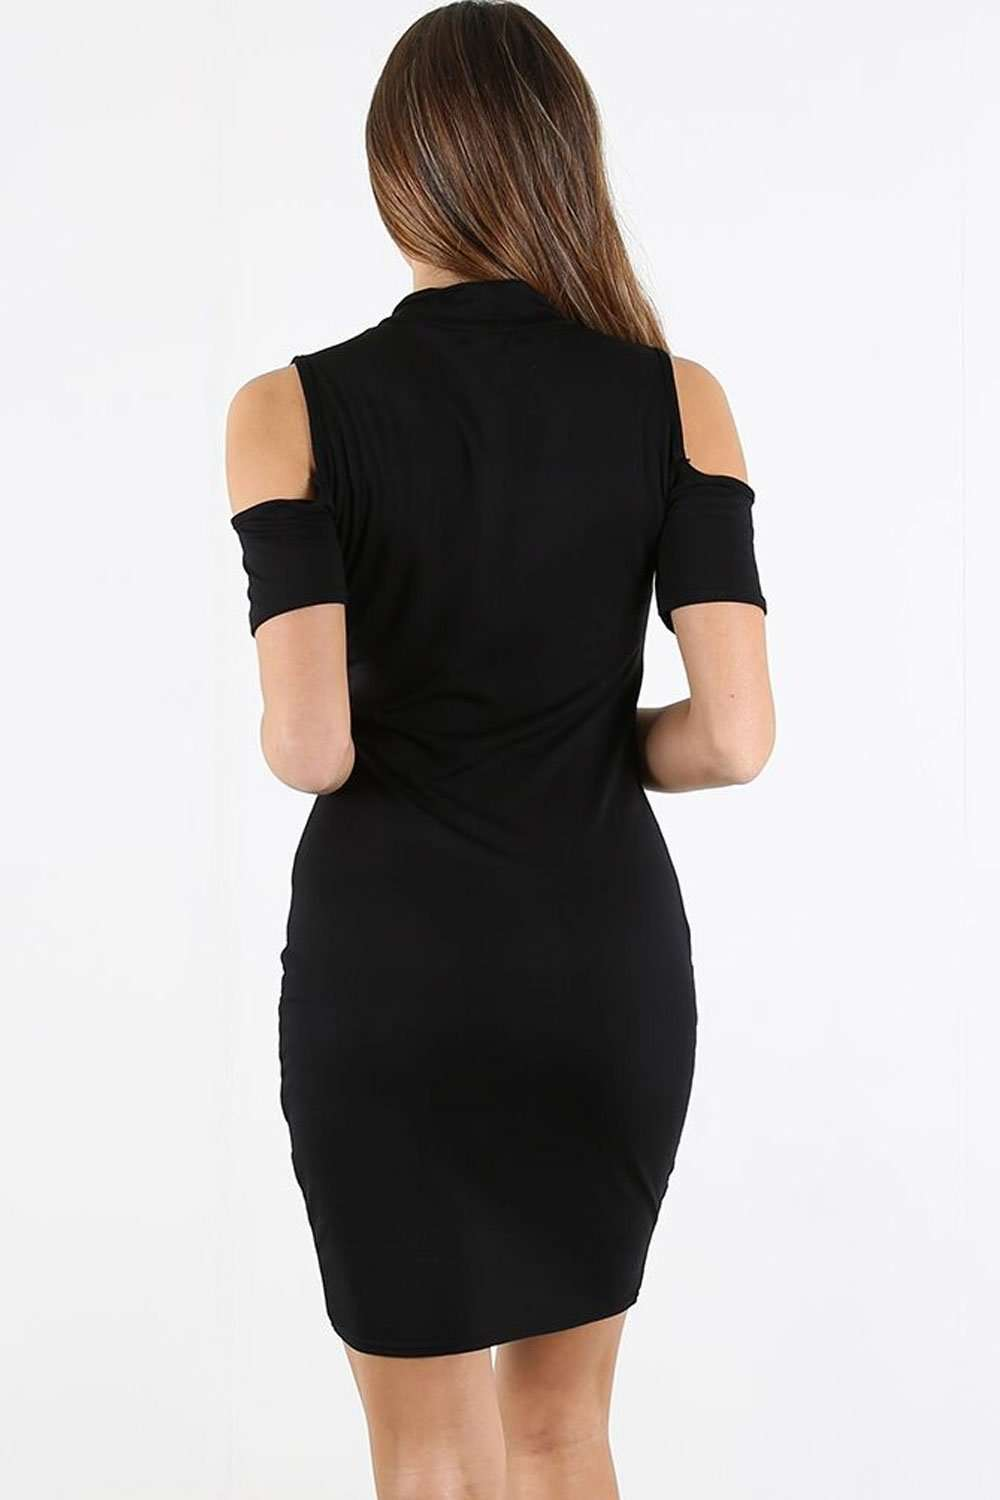 Azura Cold Shoulder Choker Bodycon Dress - bejealous-com